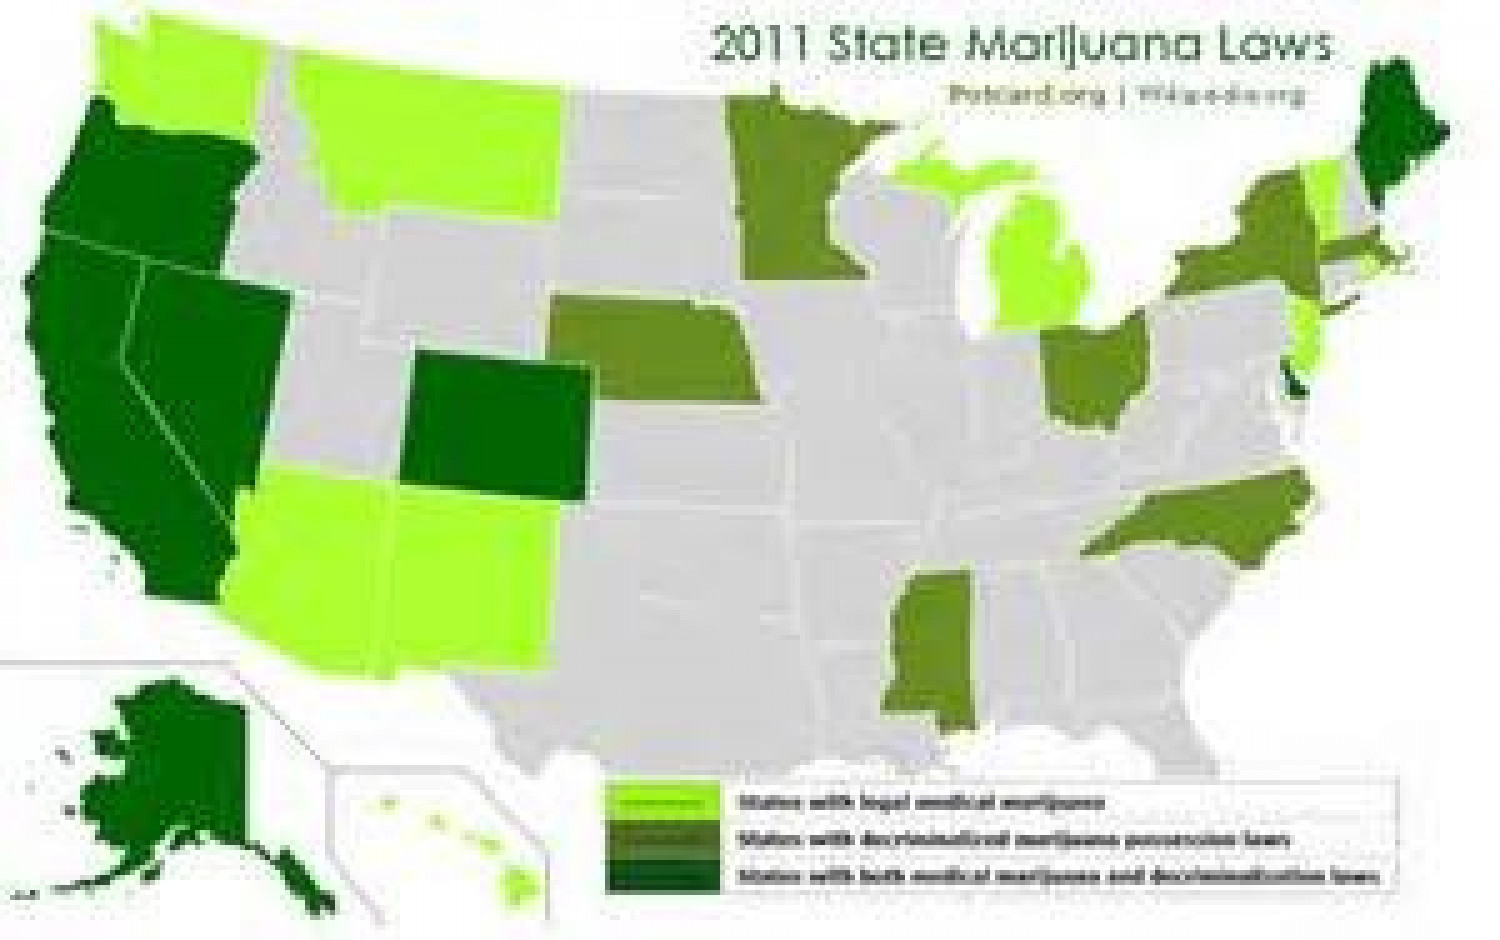 2011 Marijuana Laws Infographic